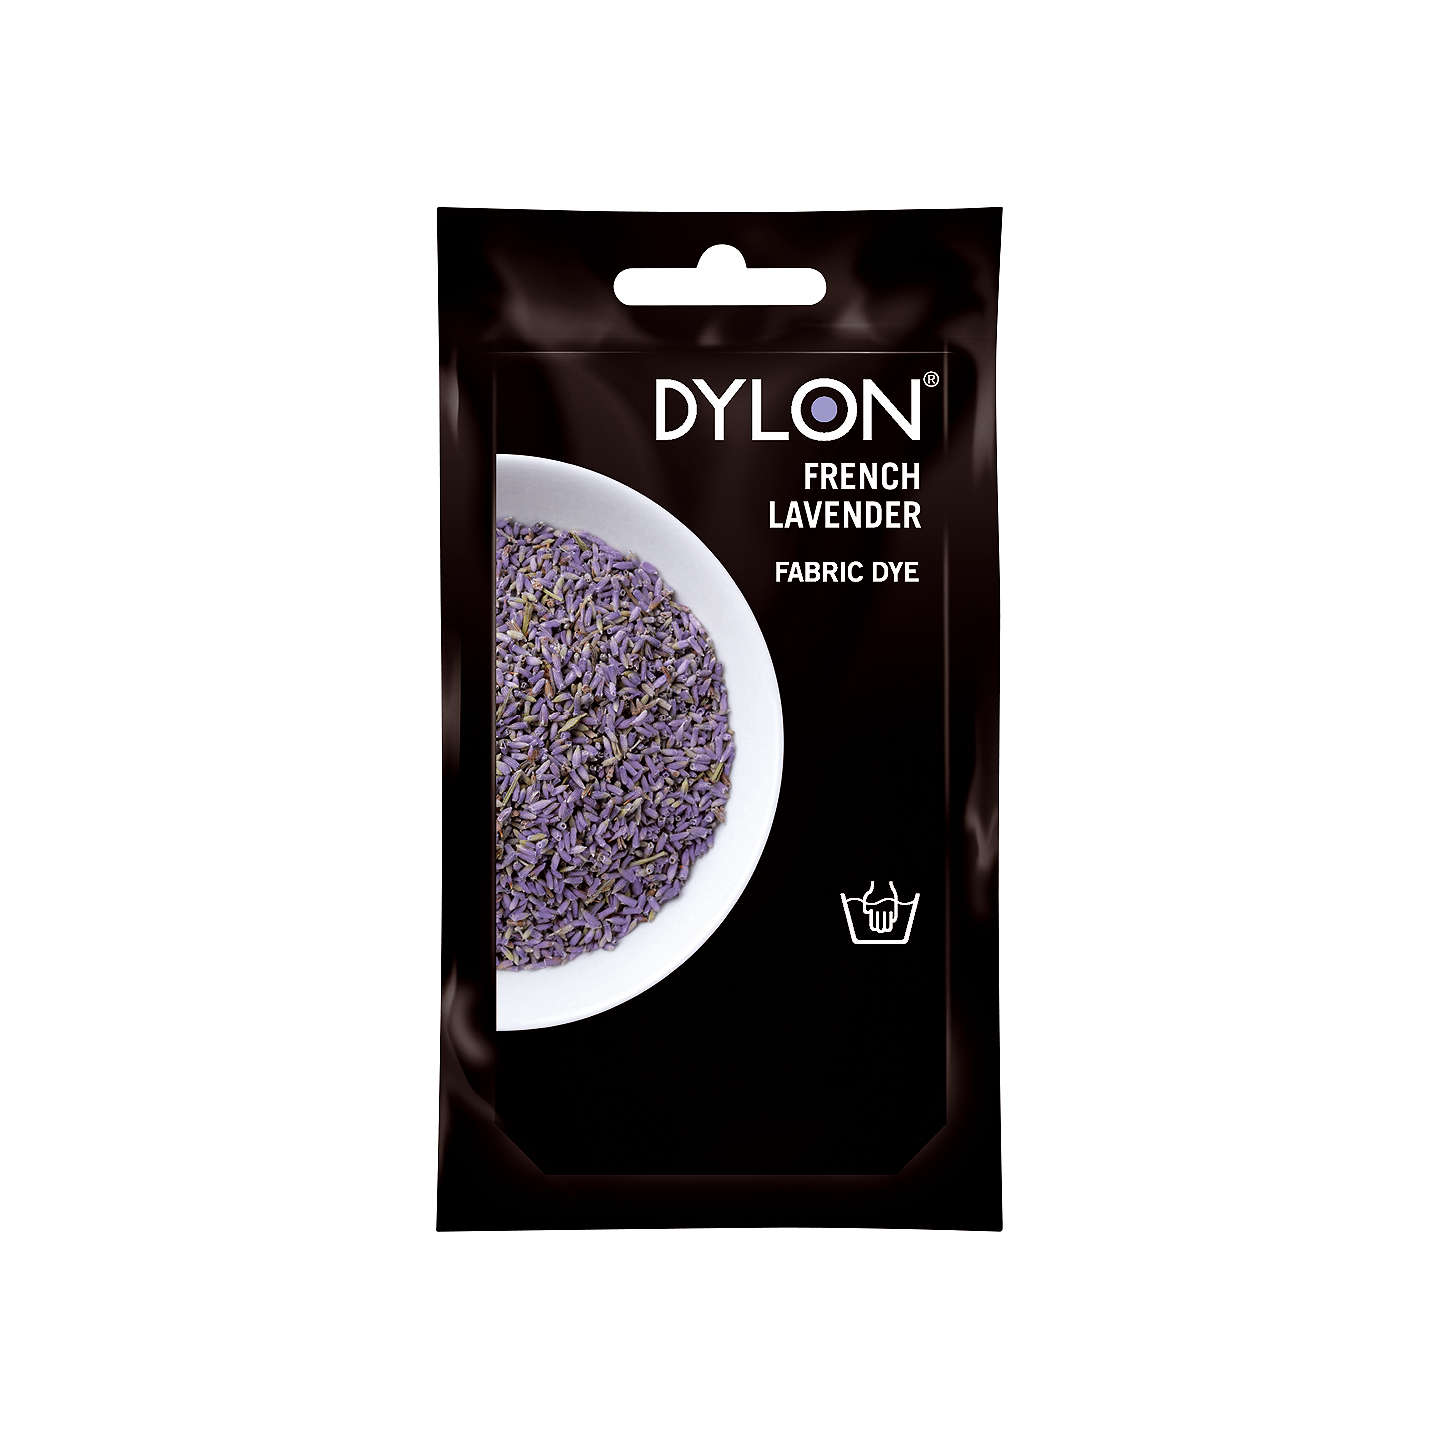 BuyDylon Hand Fabric Dye, 50g, French Lavender Online at johnlewis.com